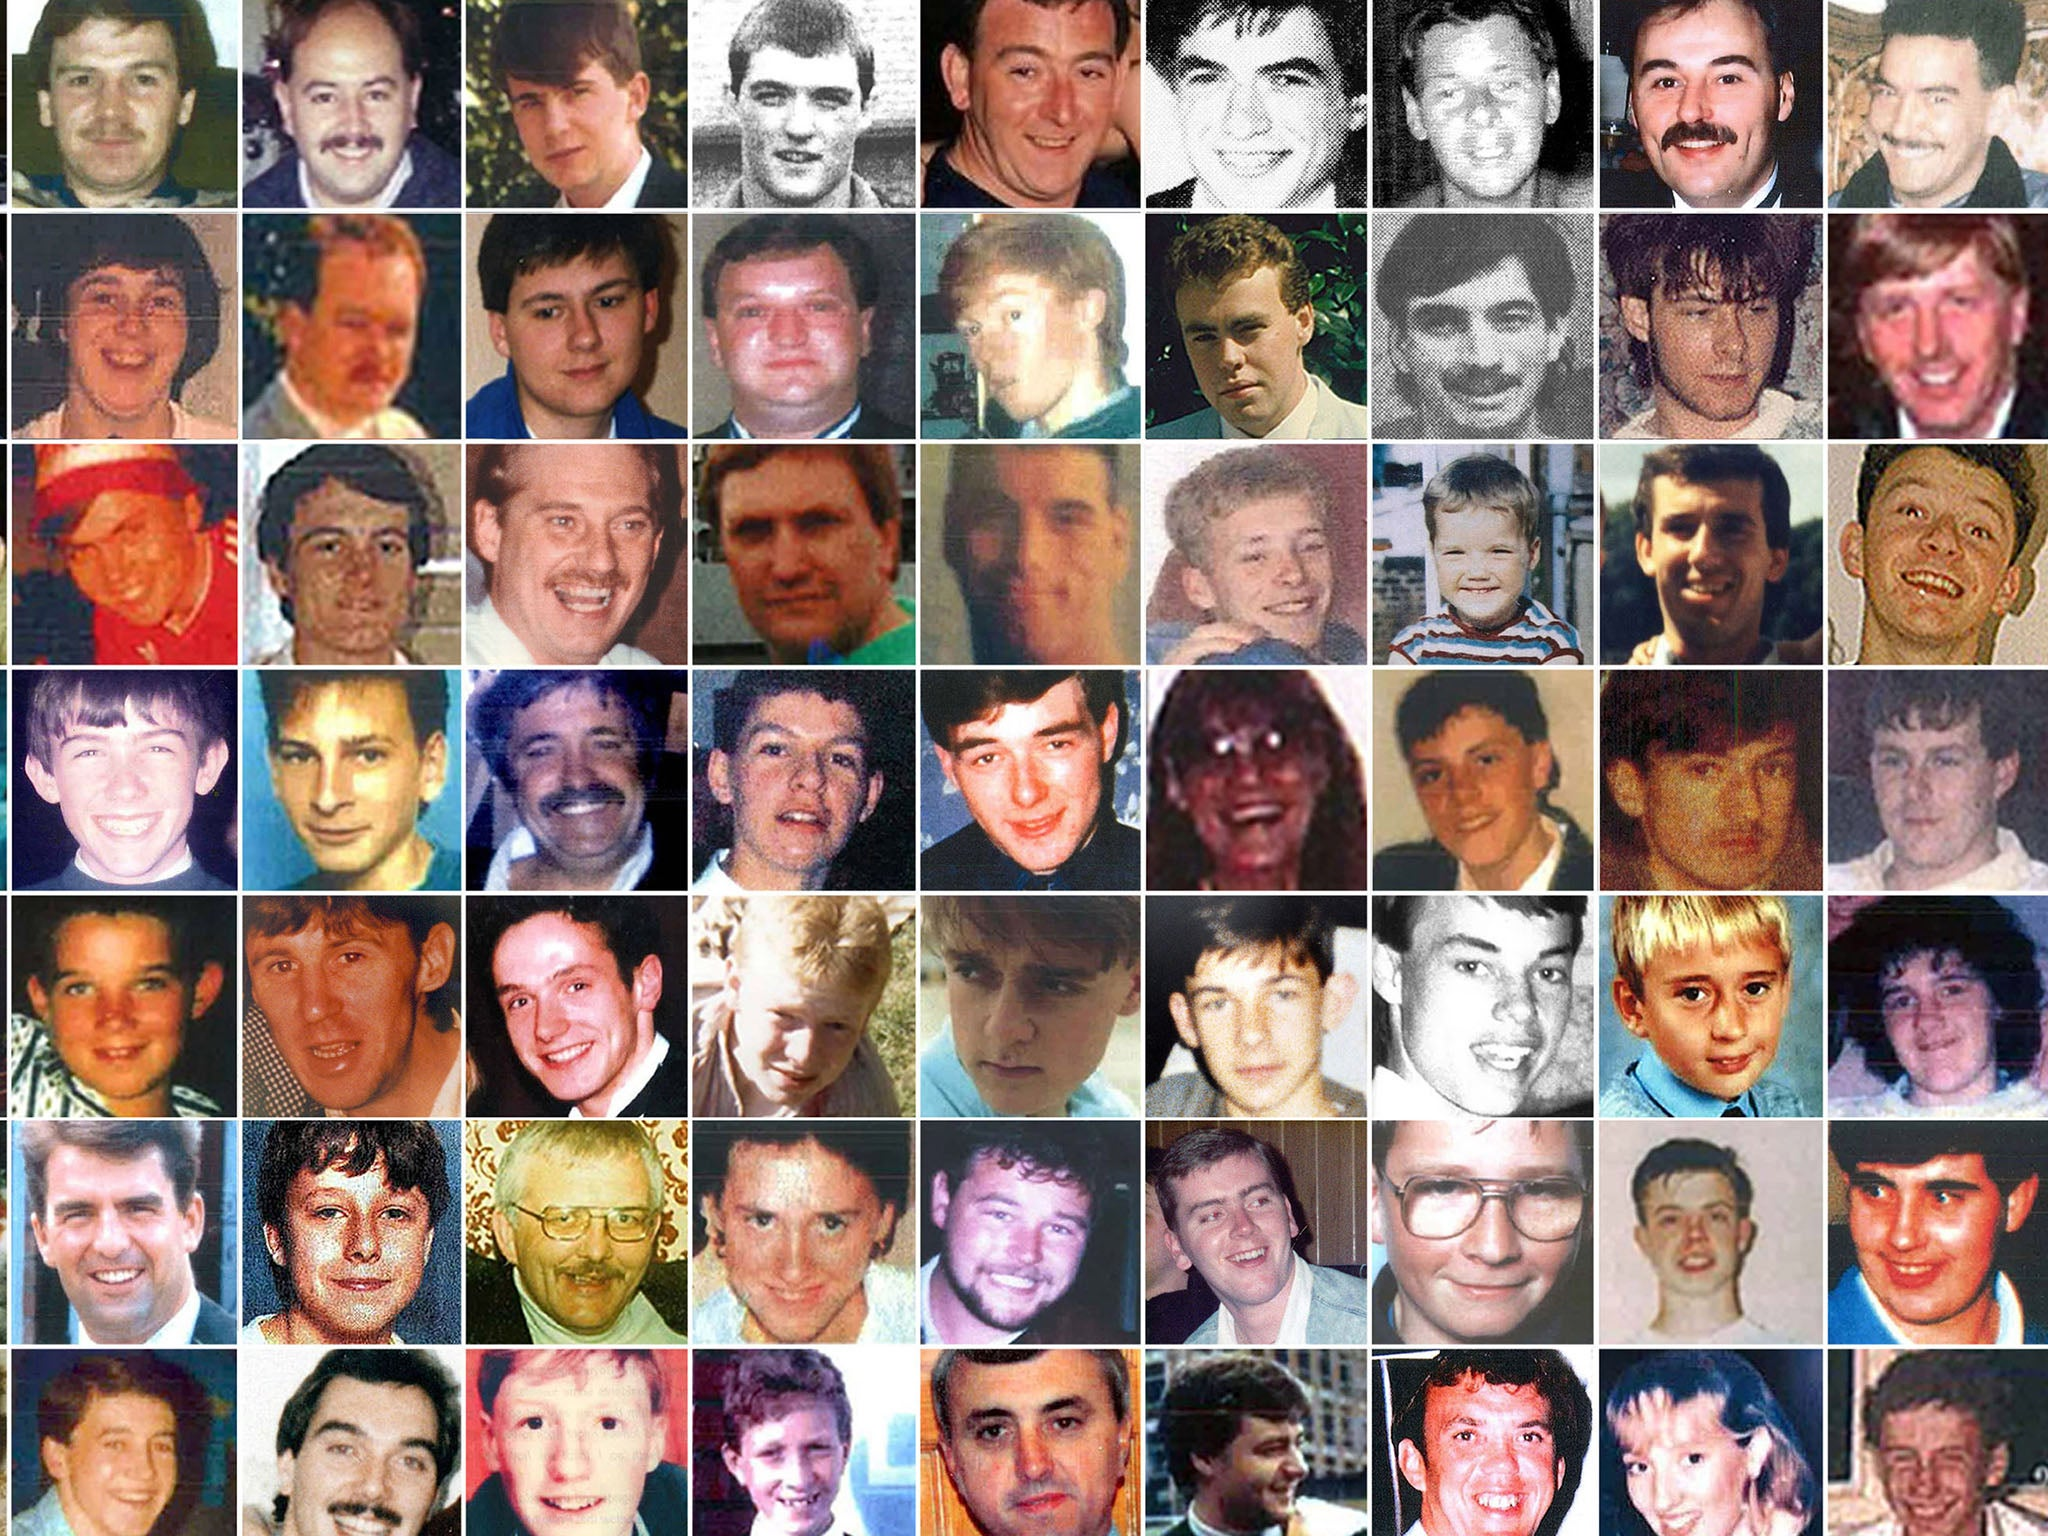 Hillsborough disaster: Five more former police officers could be charged over deaths of 96 Liverpool fans